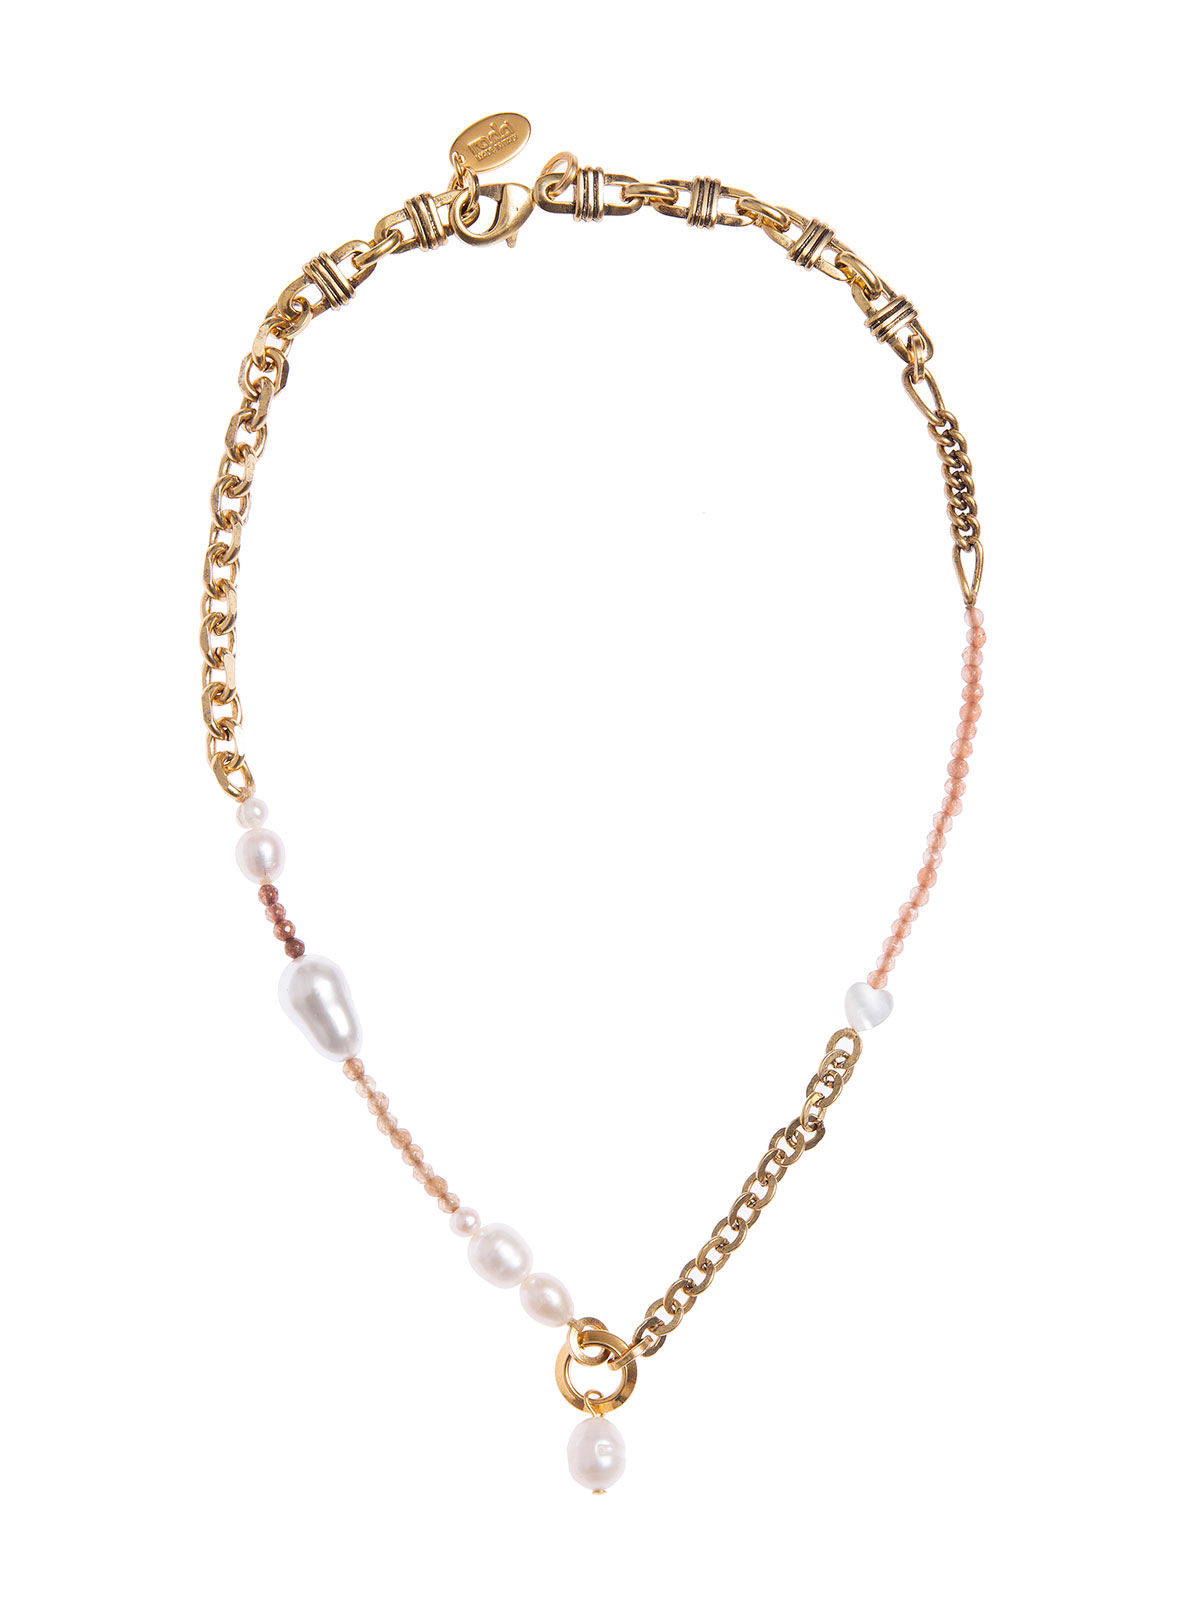 Chain necklace with jades and freshwater pearls